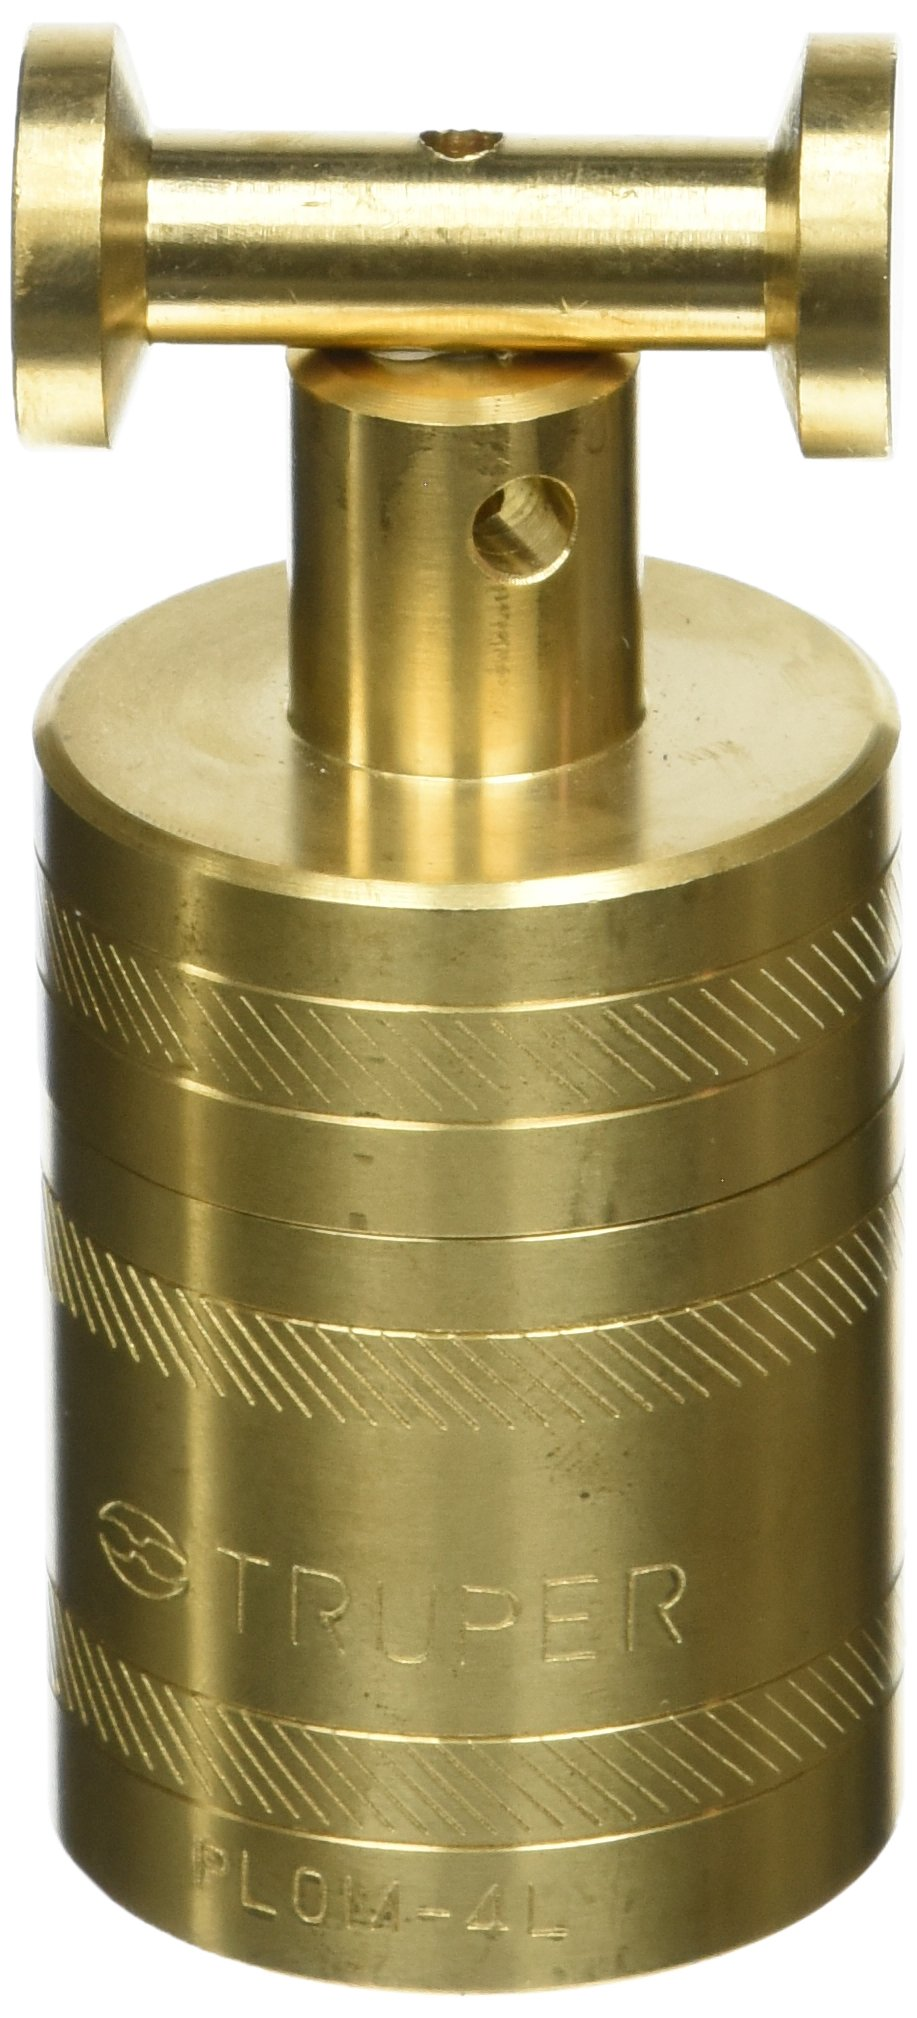 TRUPER PLOM-4L Brass Plumb Bobs w/ Center 21 Oz (582 g)